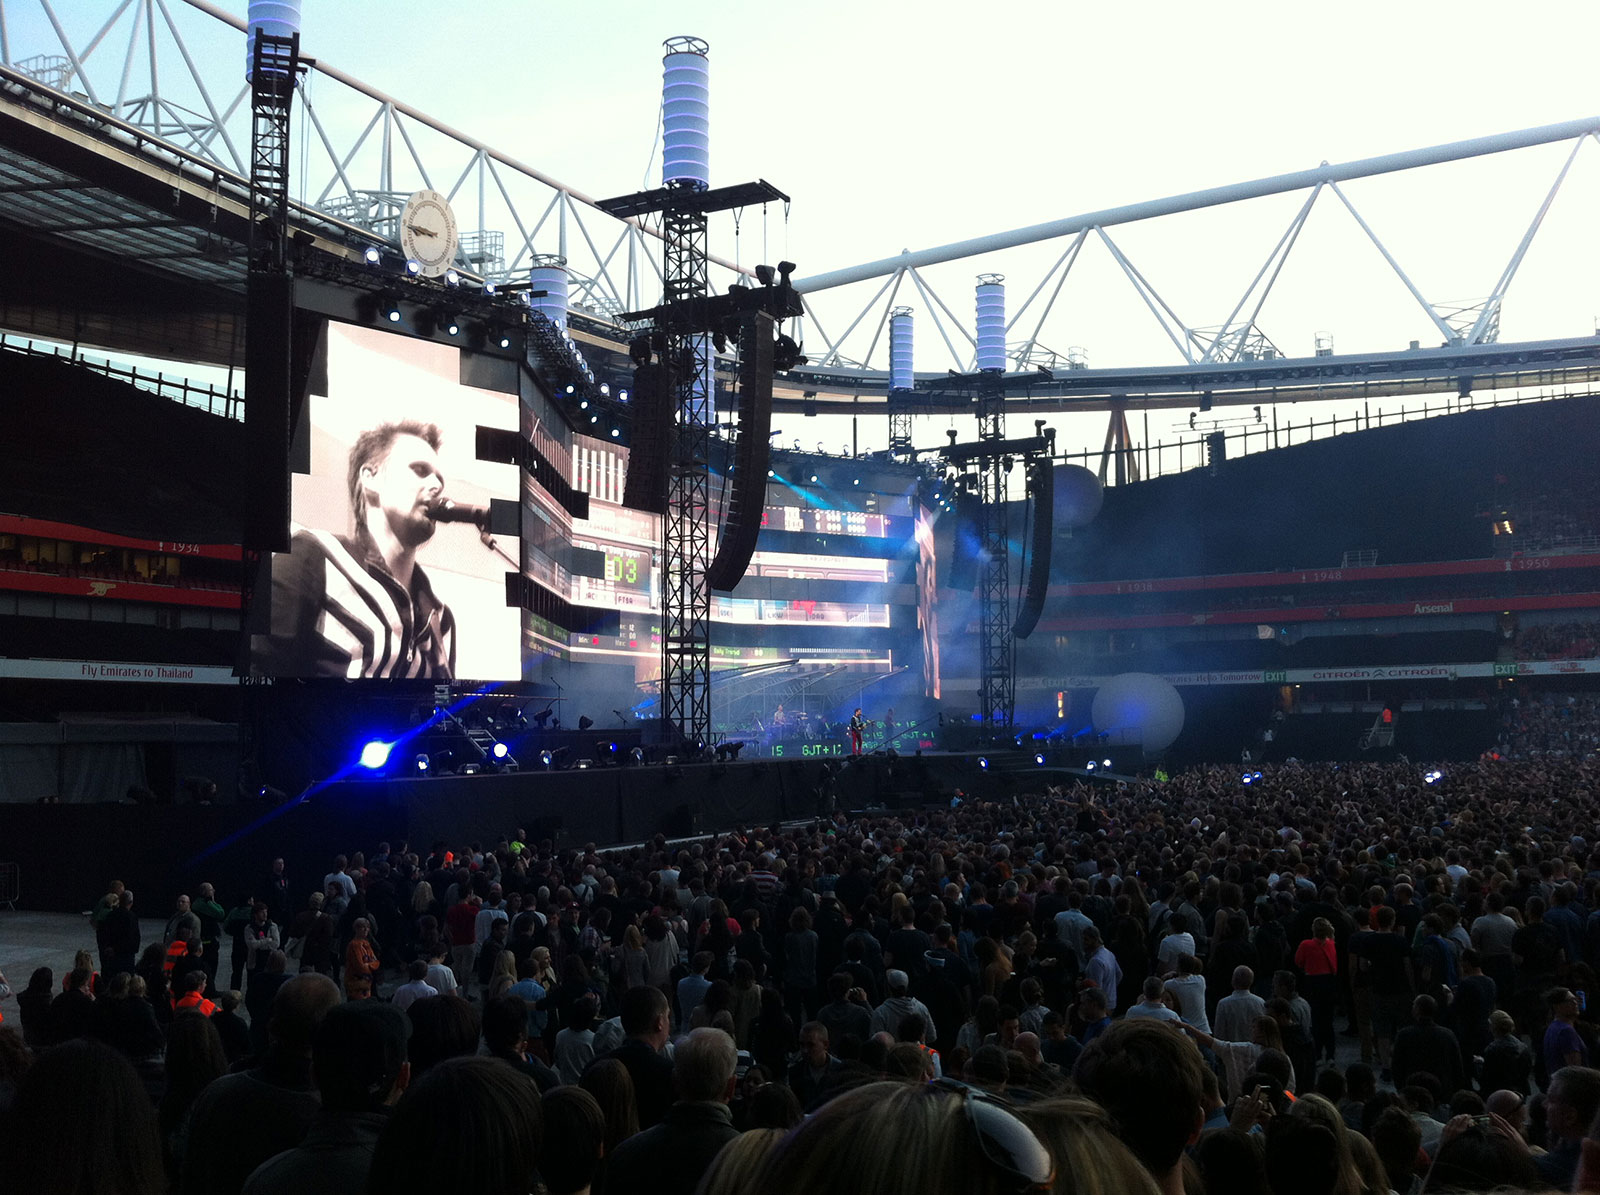 Muse's 2nd Law tour stage